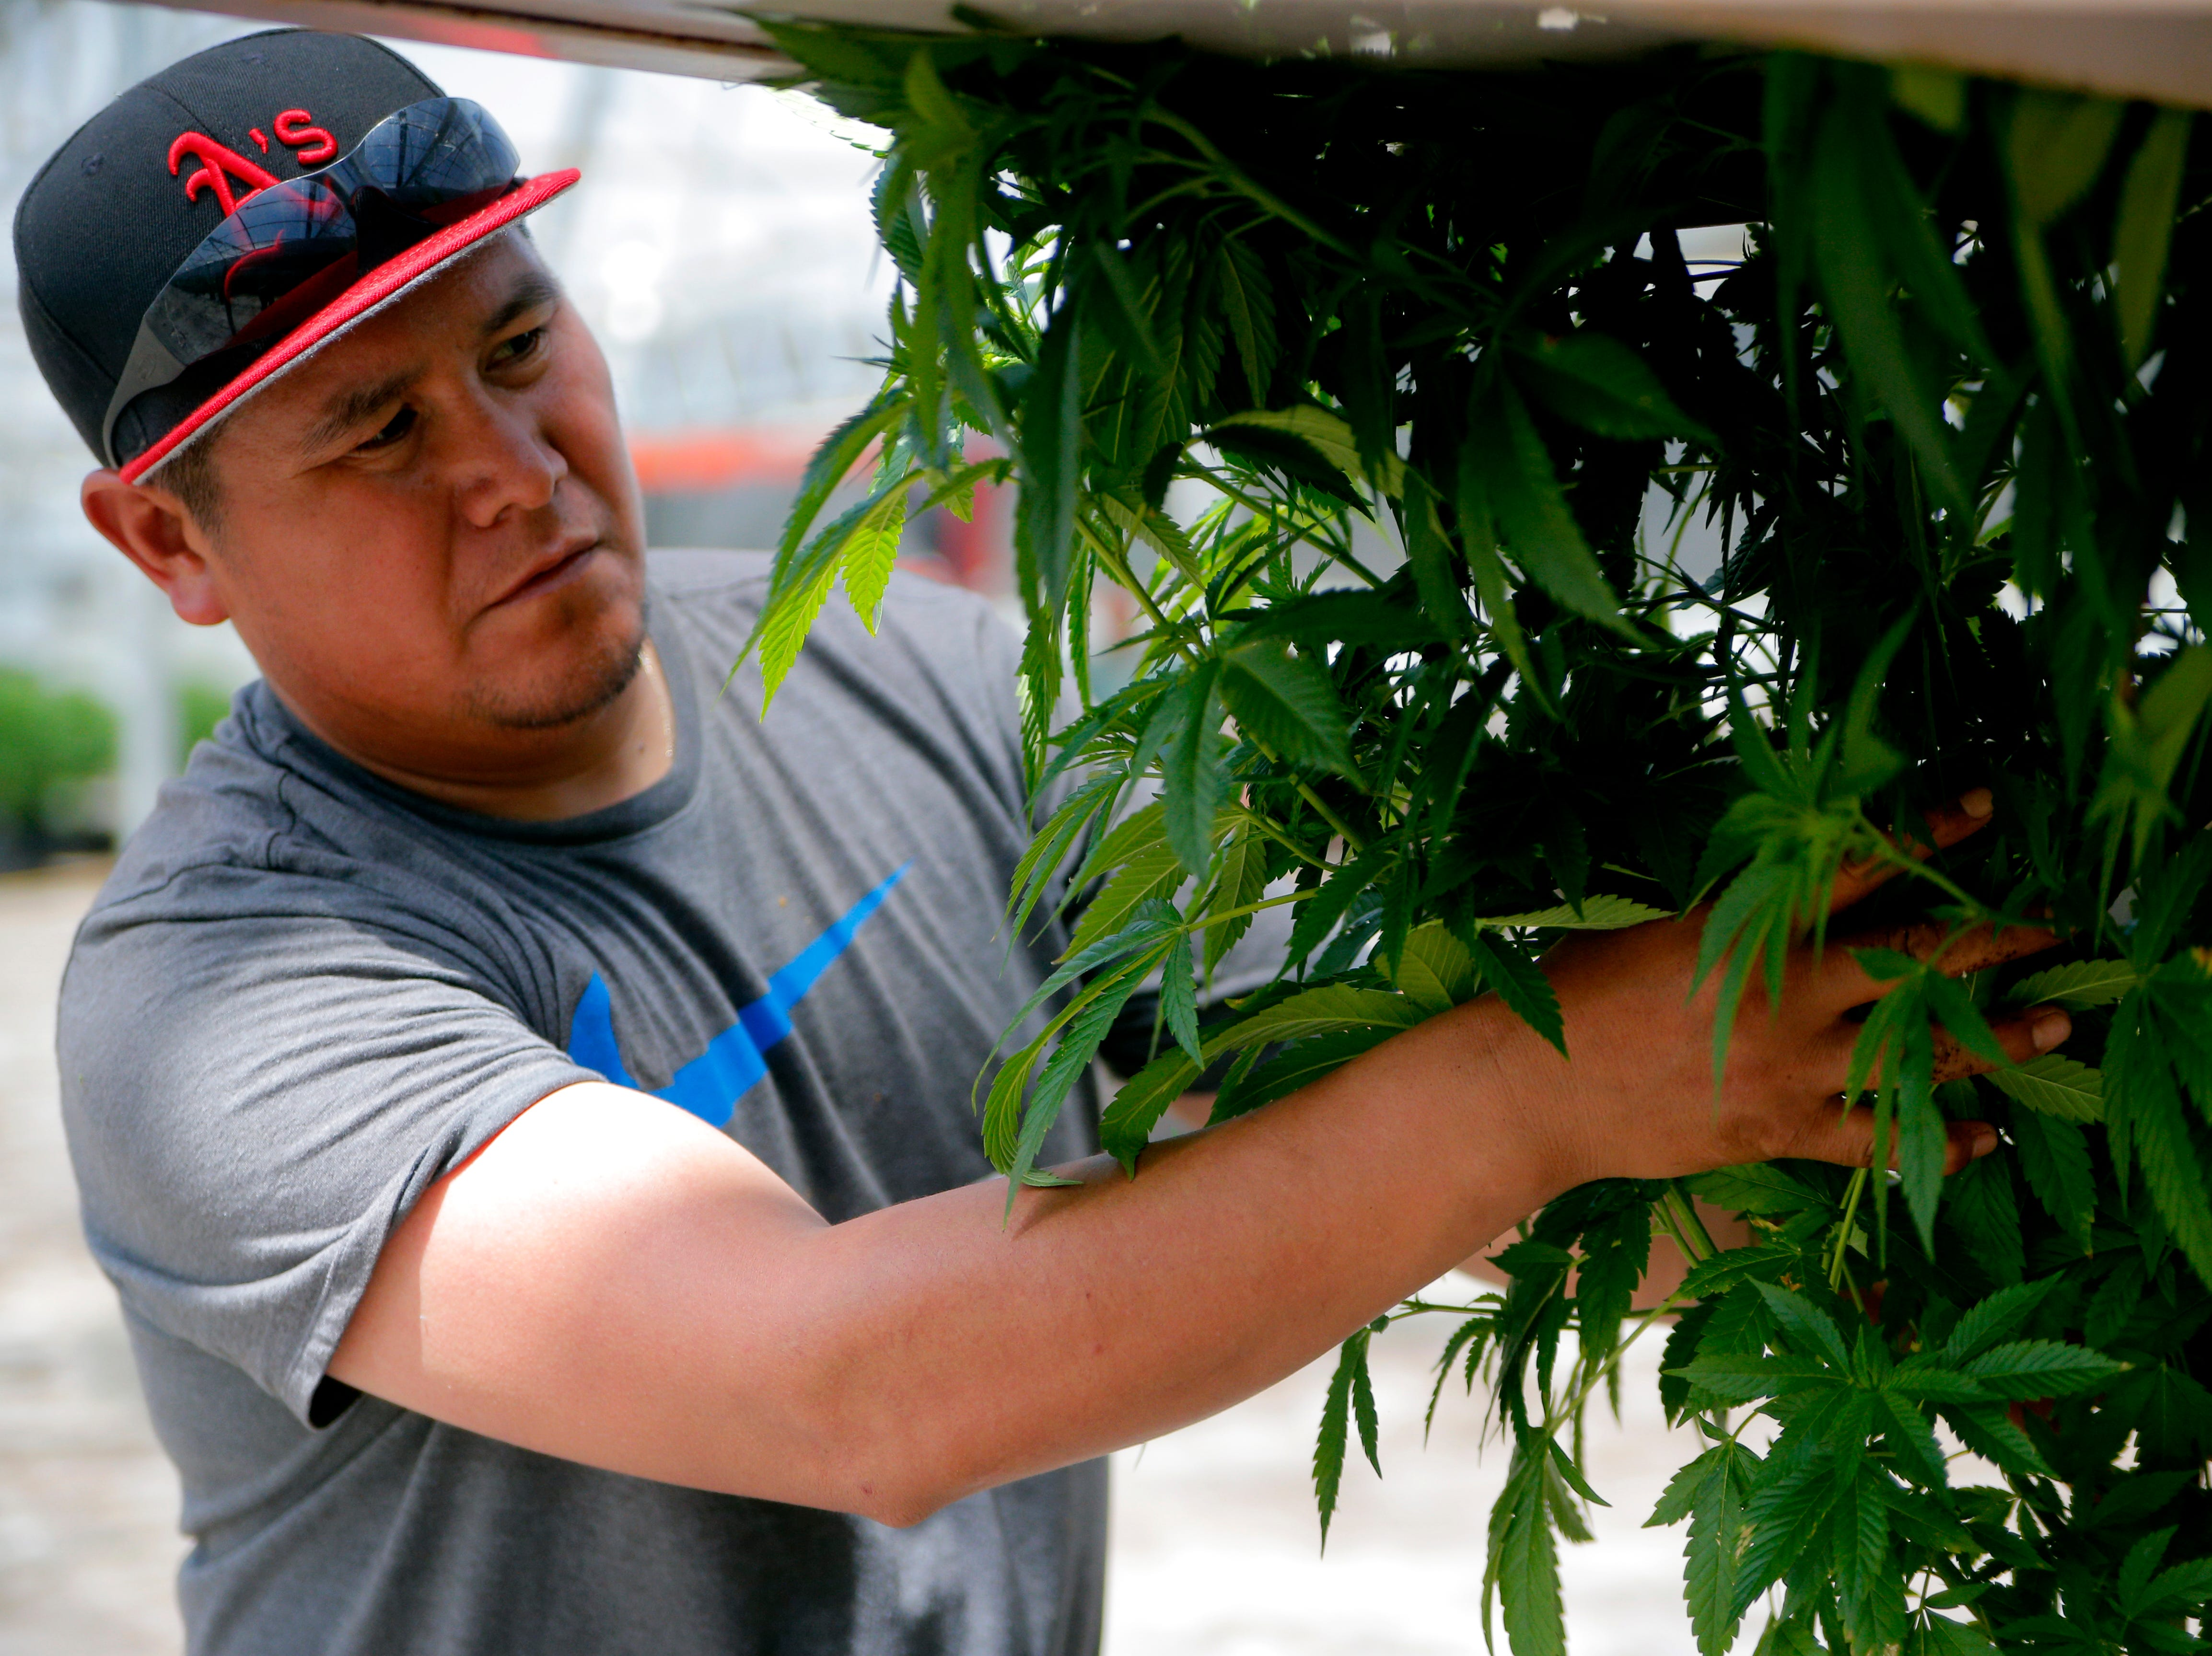 Melitón Andres Hernadez places a cannabis plant on a cart April 19, 2019, at Pacific Reserve, a nursery and cultivation site where he works outside of Salinas.